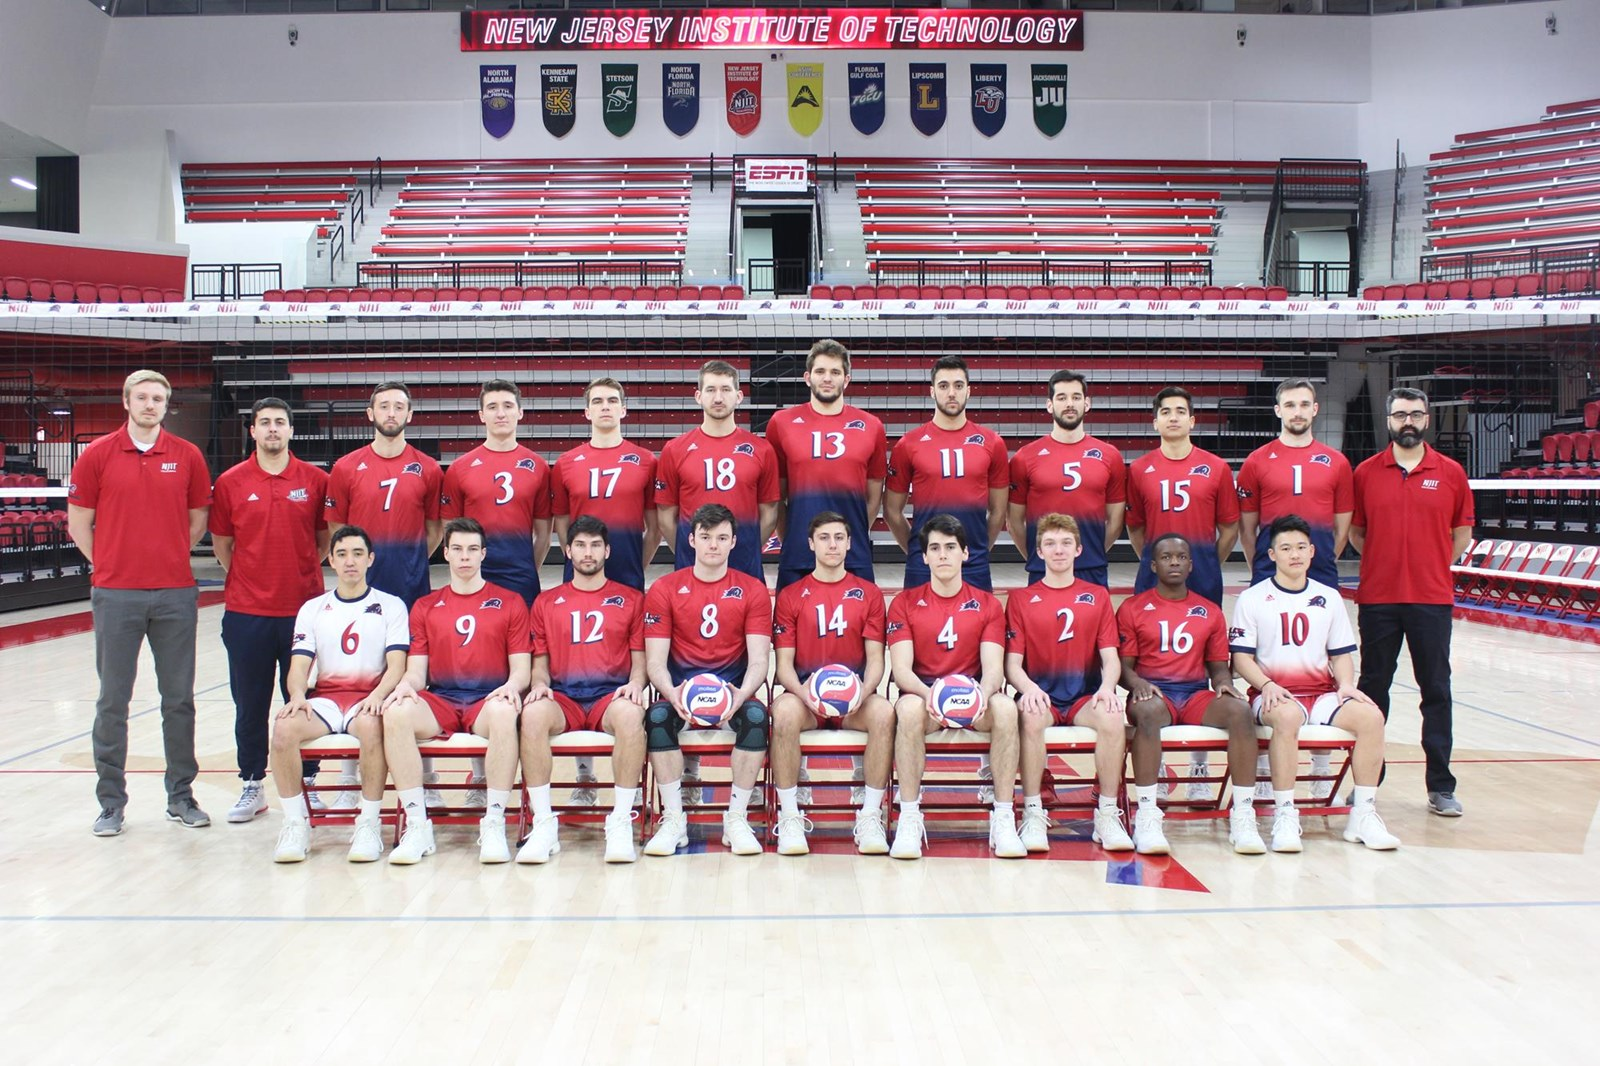 bd611701e 2019 Men's Volleyball Roster - New Jersey Institute of Technology ...